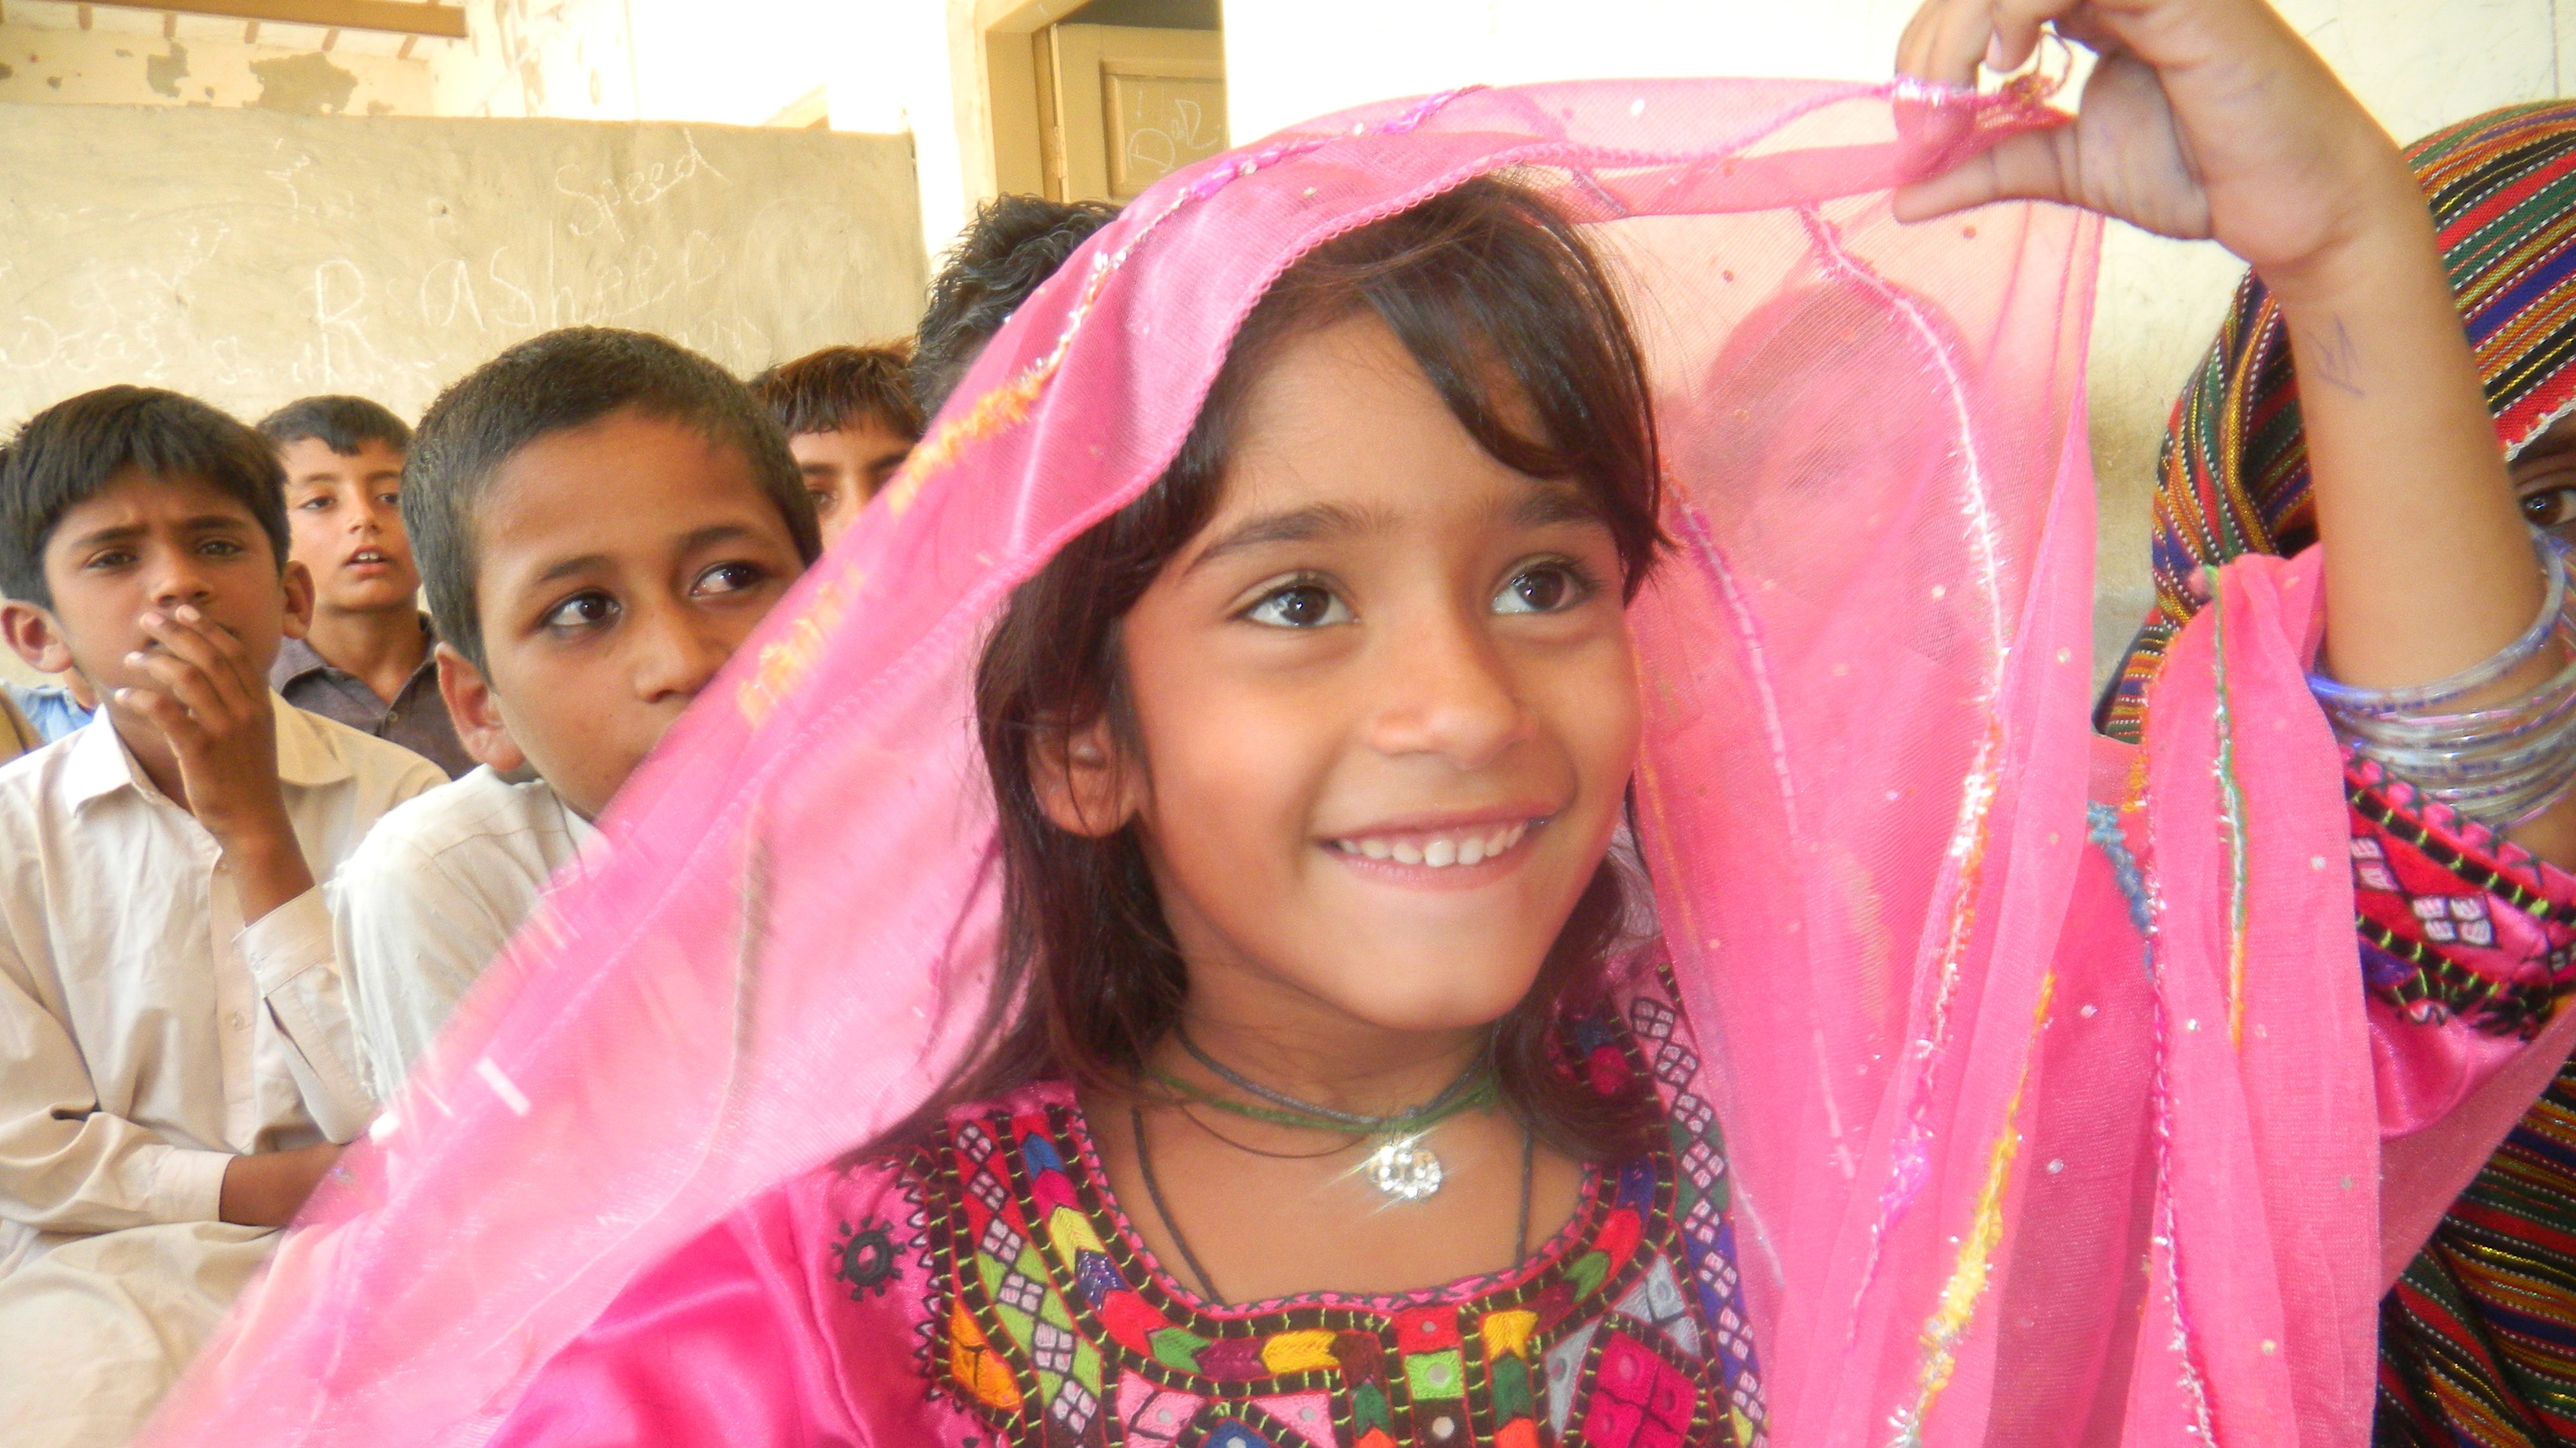 Slideshow: Filling the Education Gap in Pakistan